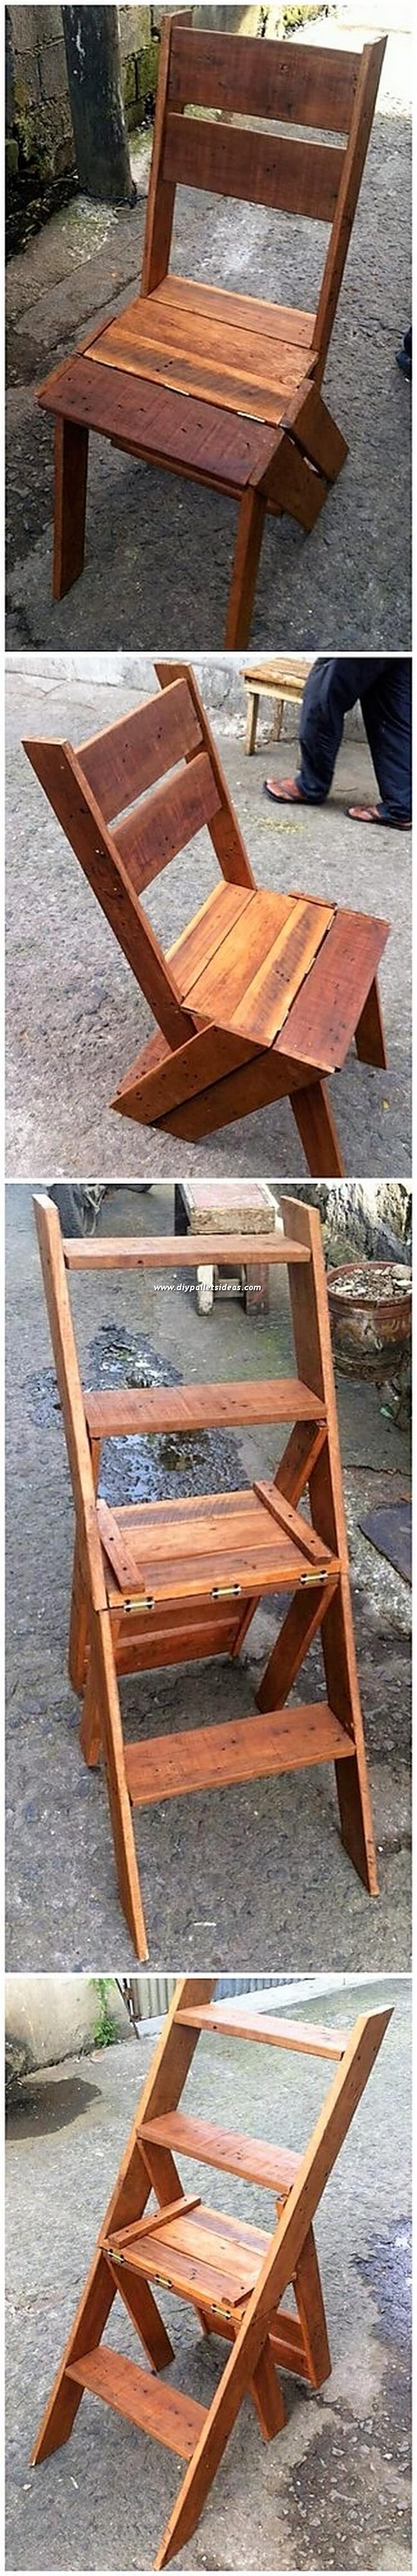 Pallet Chair or Convertible Stair